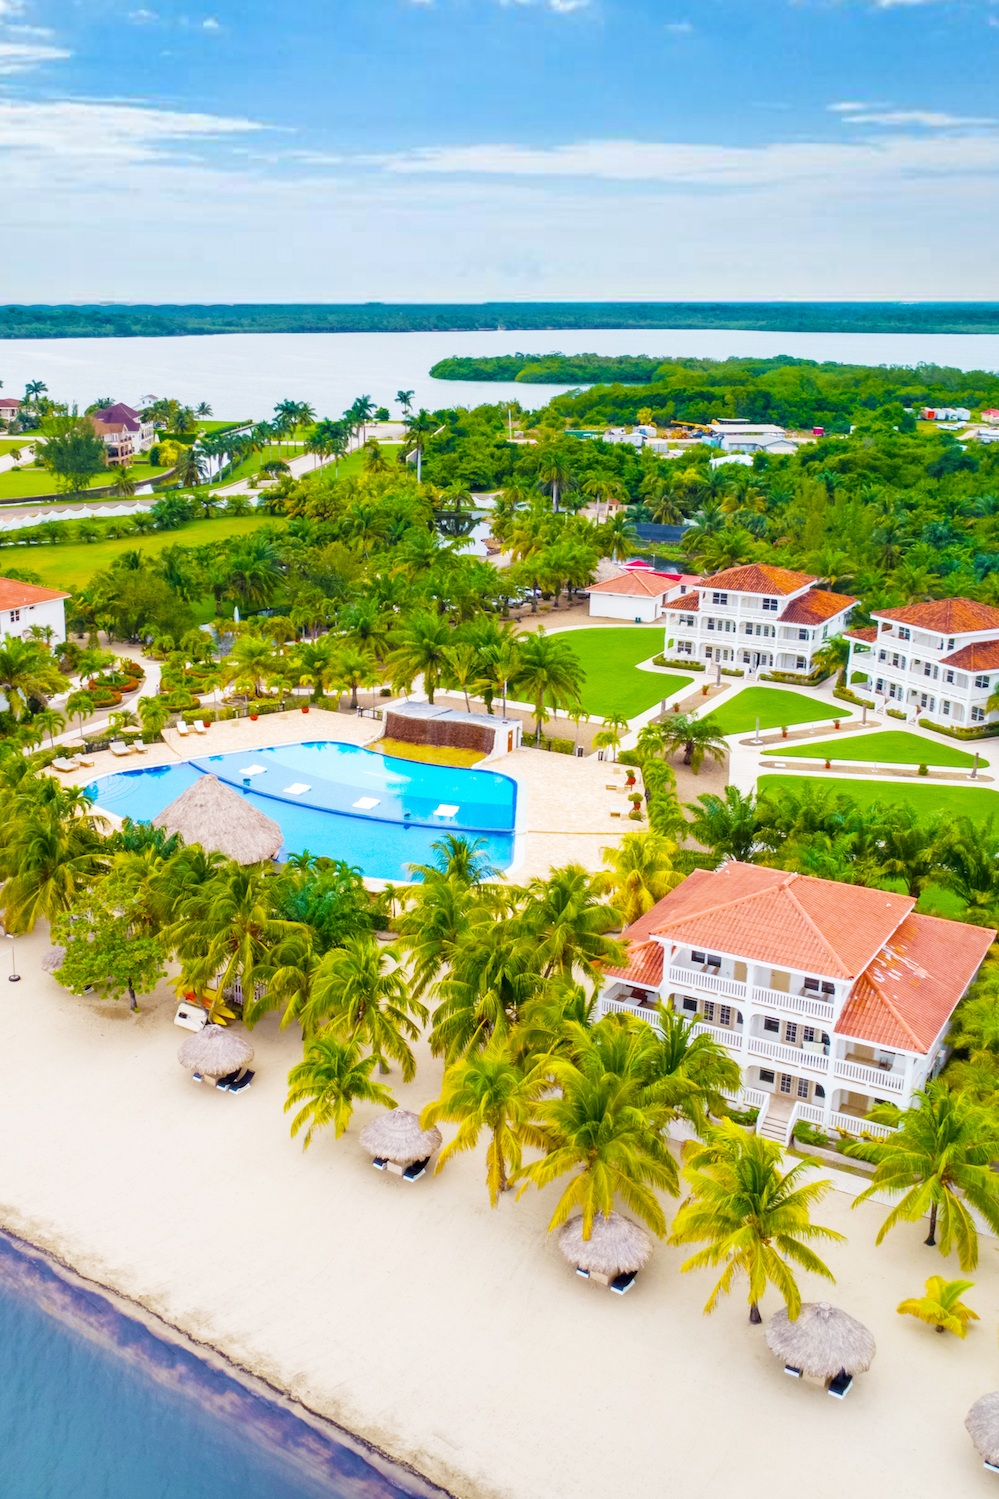 The PLacencia -